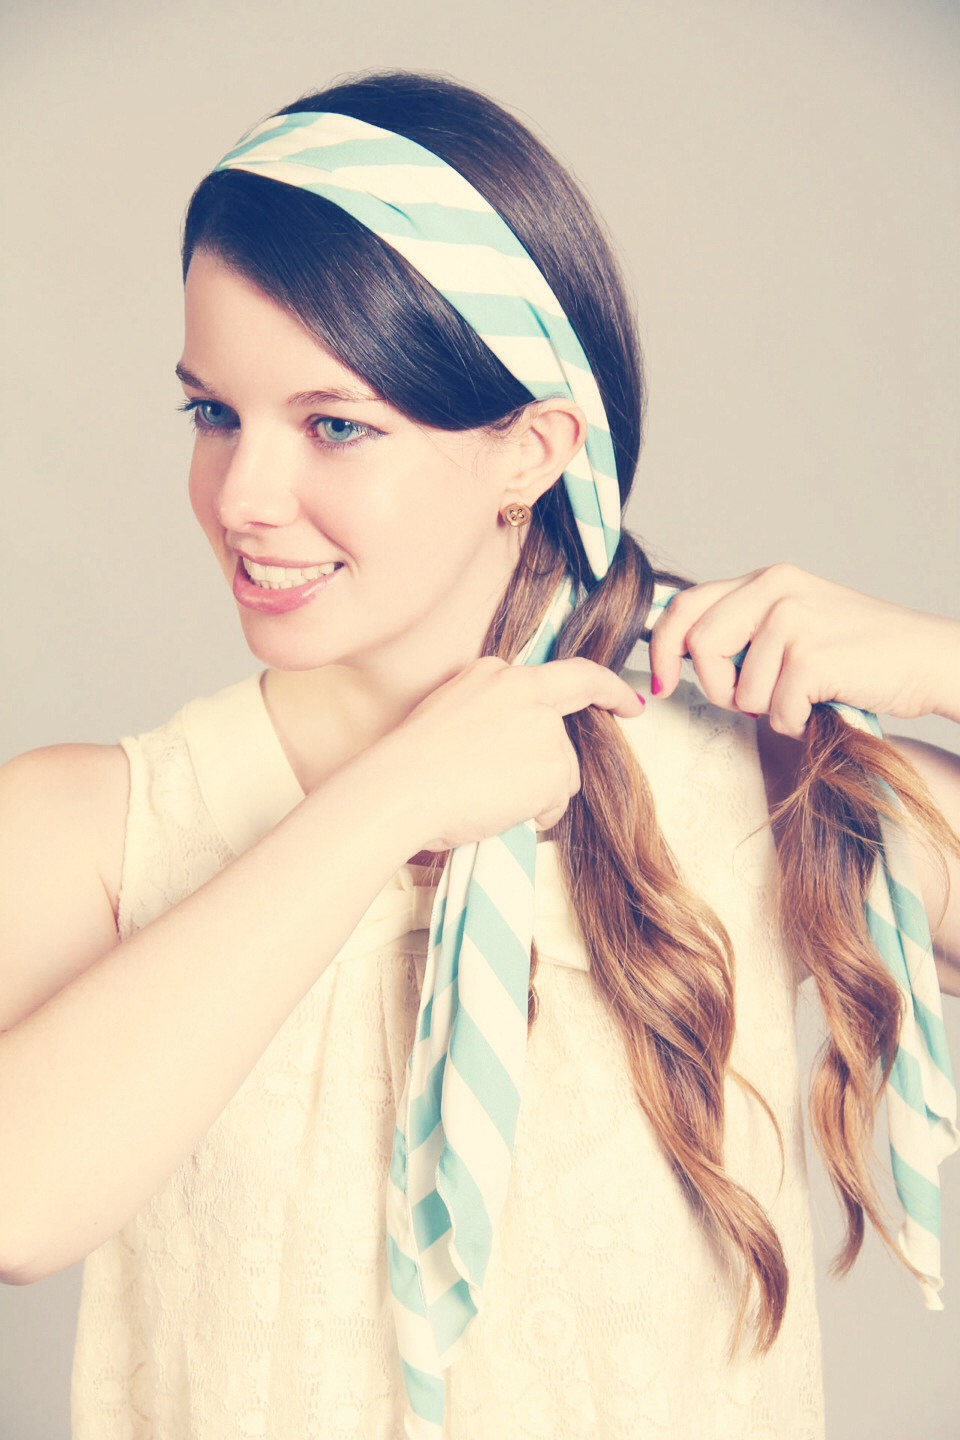 You can even wear it as a headband and seamlessly encoreporate it into a classic 3 strand braid!